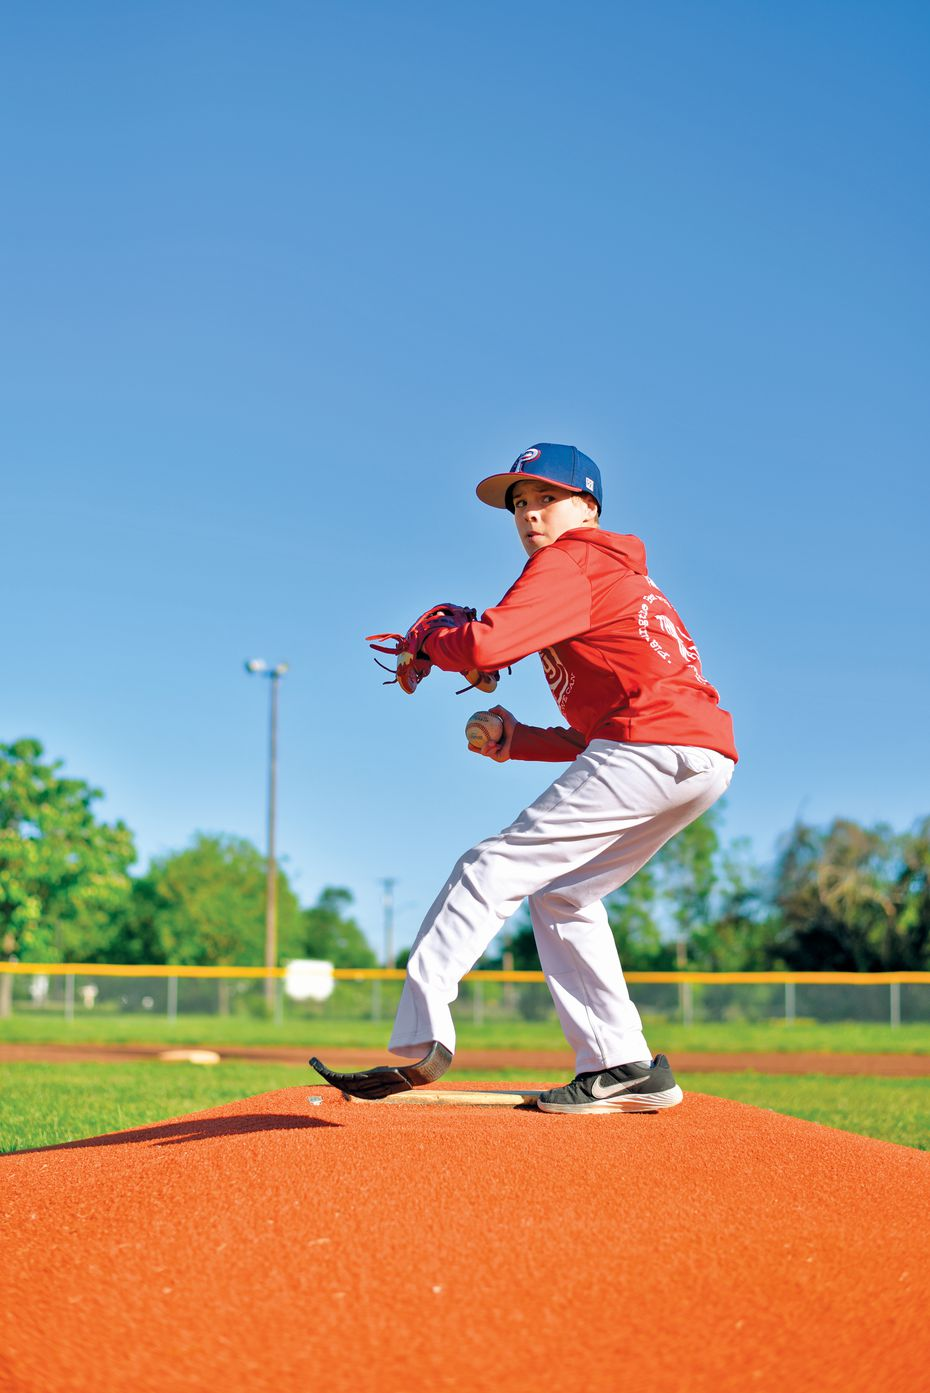 Austin is an avid athlete, but his traumatic injury didn't deter him from pursuing his love for sports.